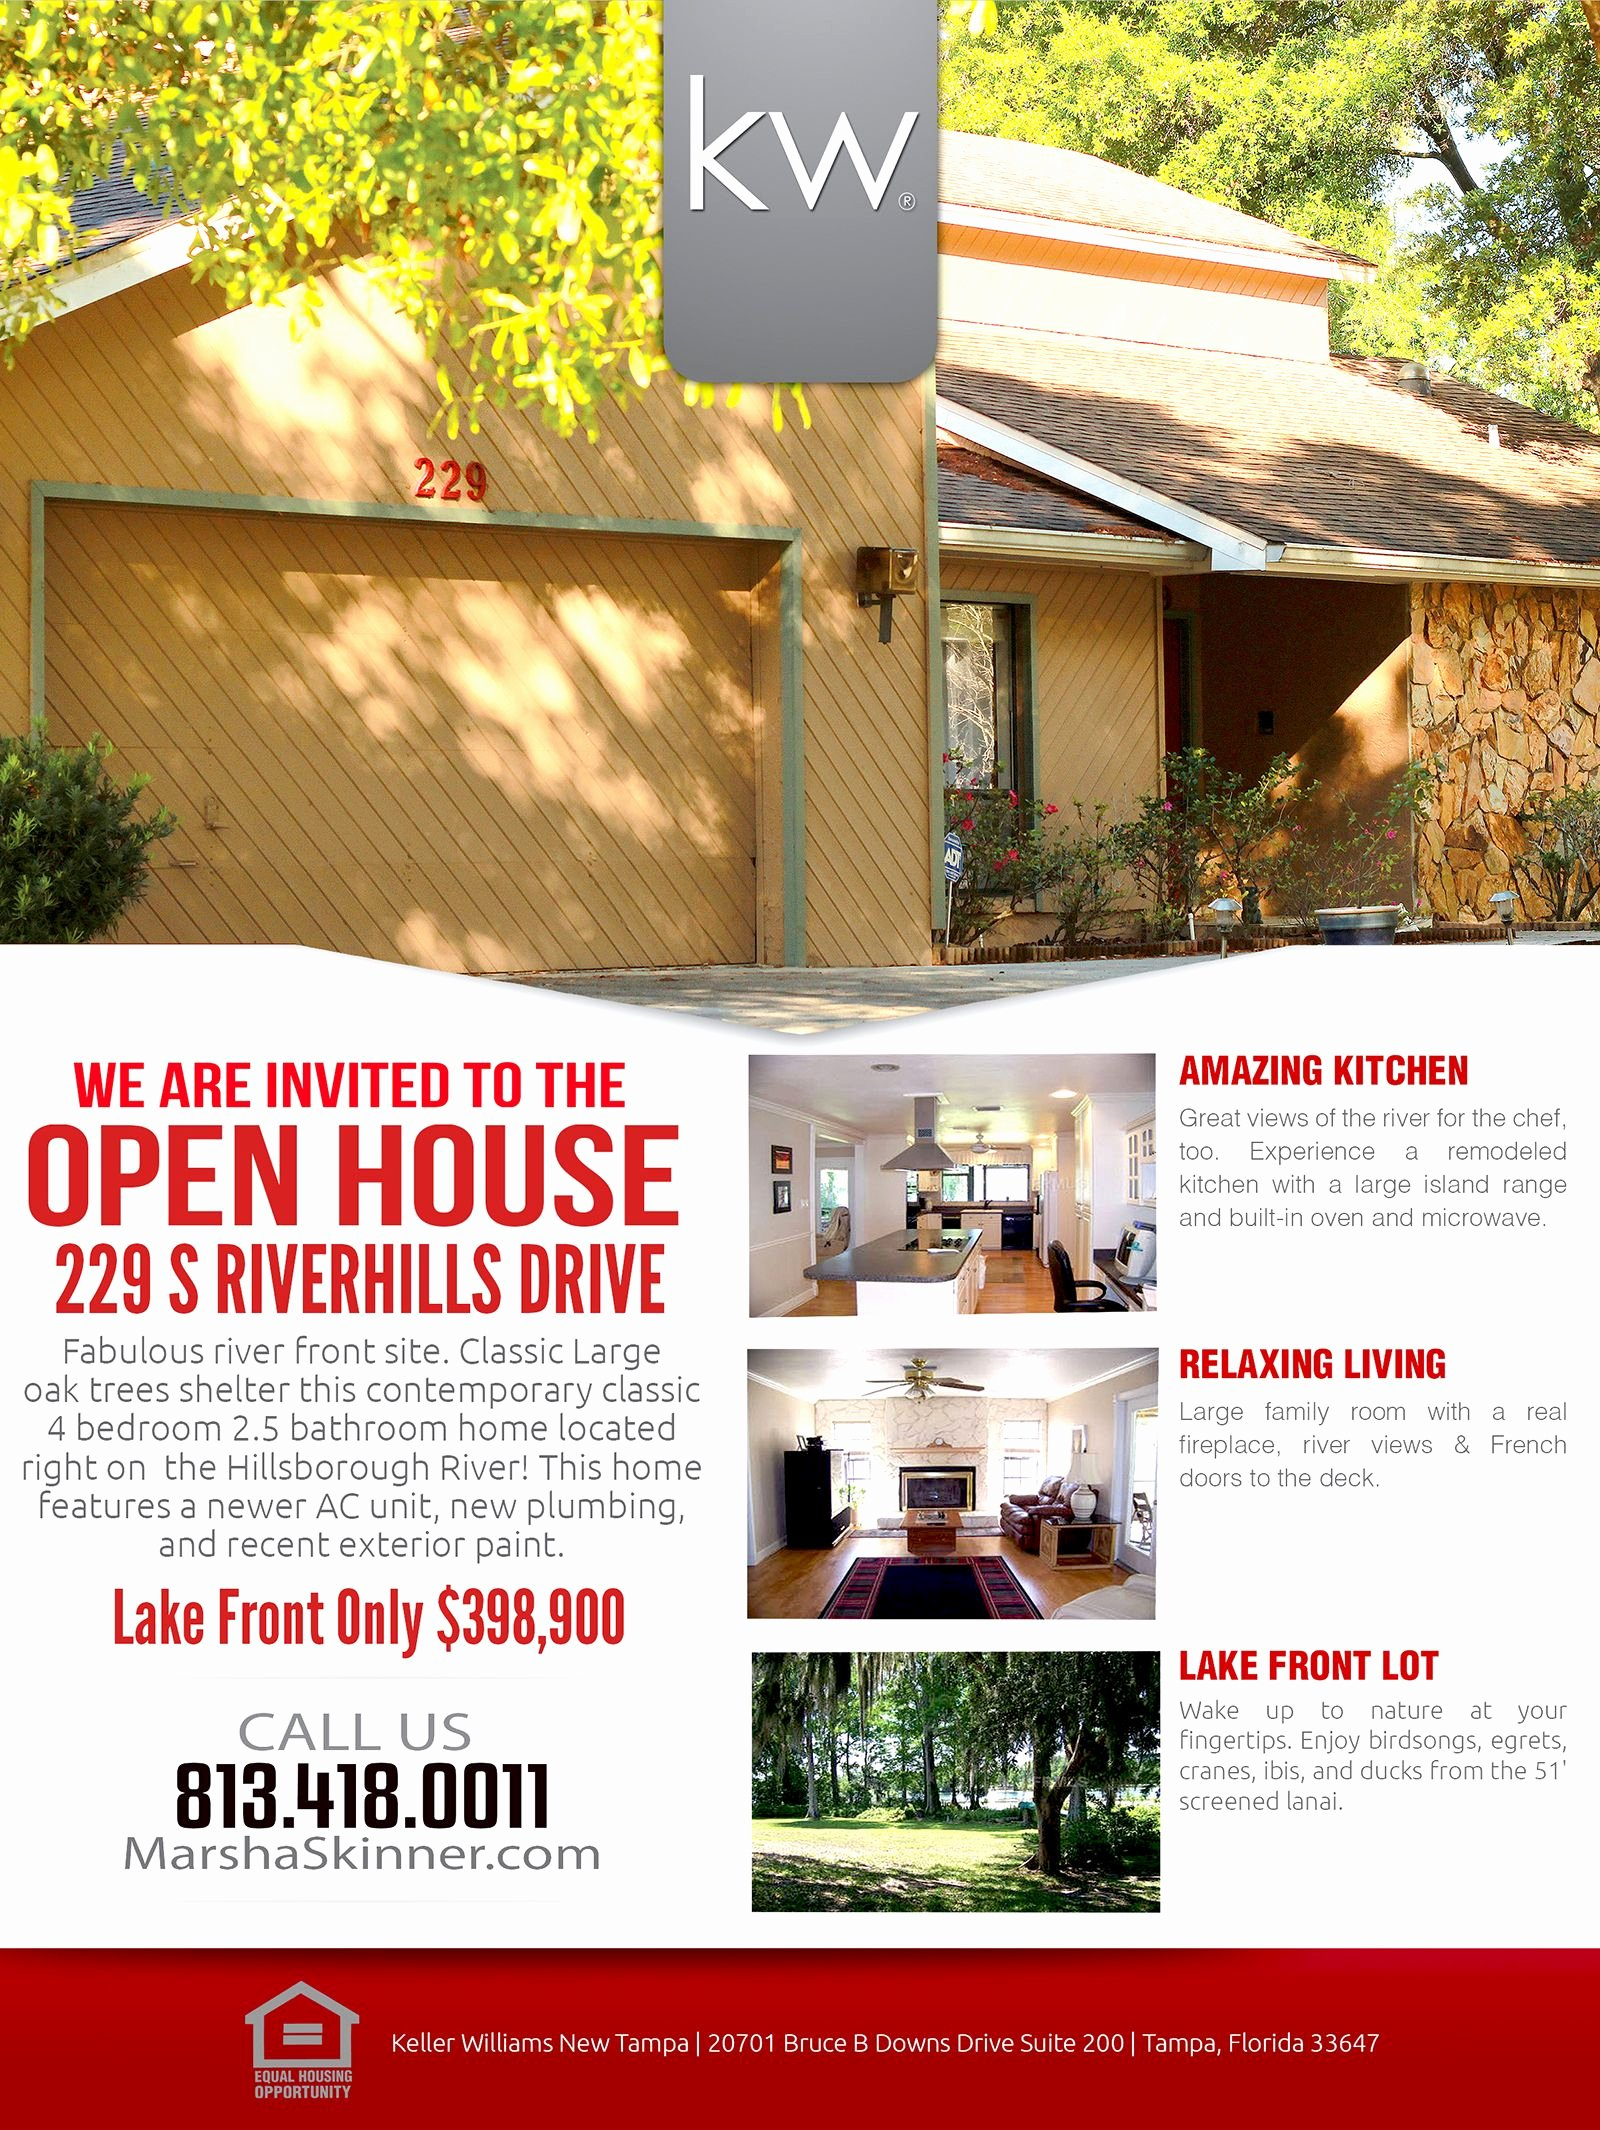 Open House Flyers Template Awesome Temple Terrace Open House Flyer Marsha Skinner